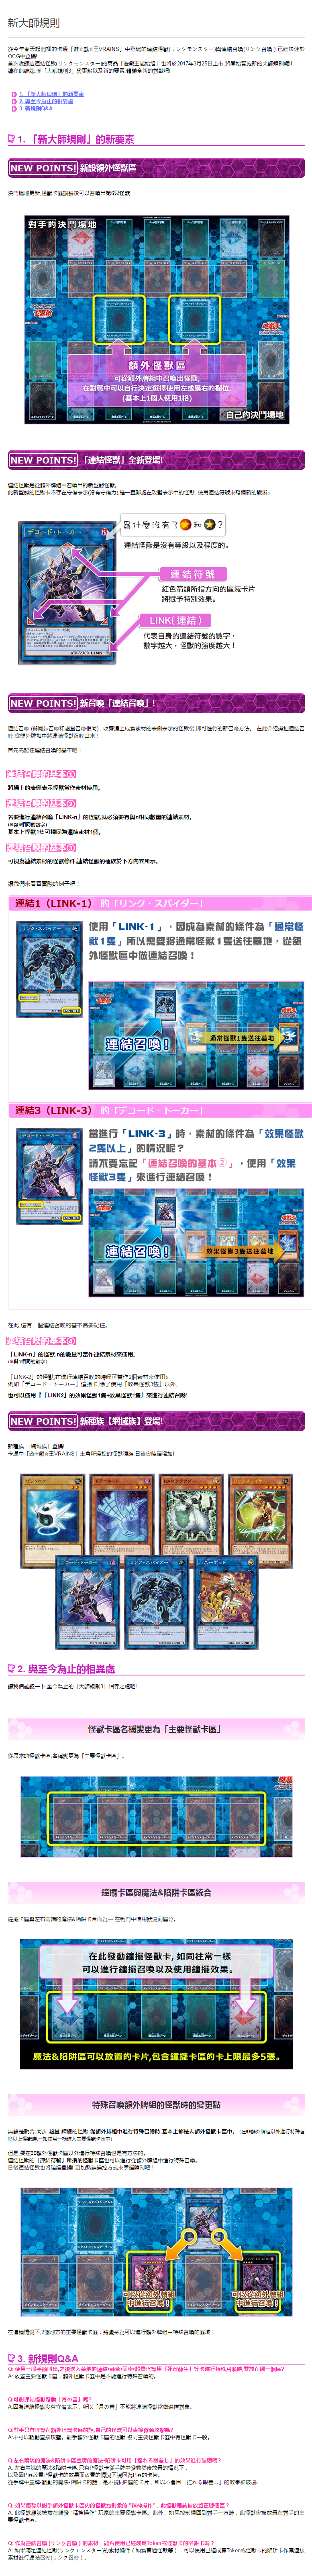 http://www.yugioh-card.com/hk/download/nm_cn.png